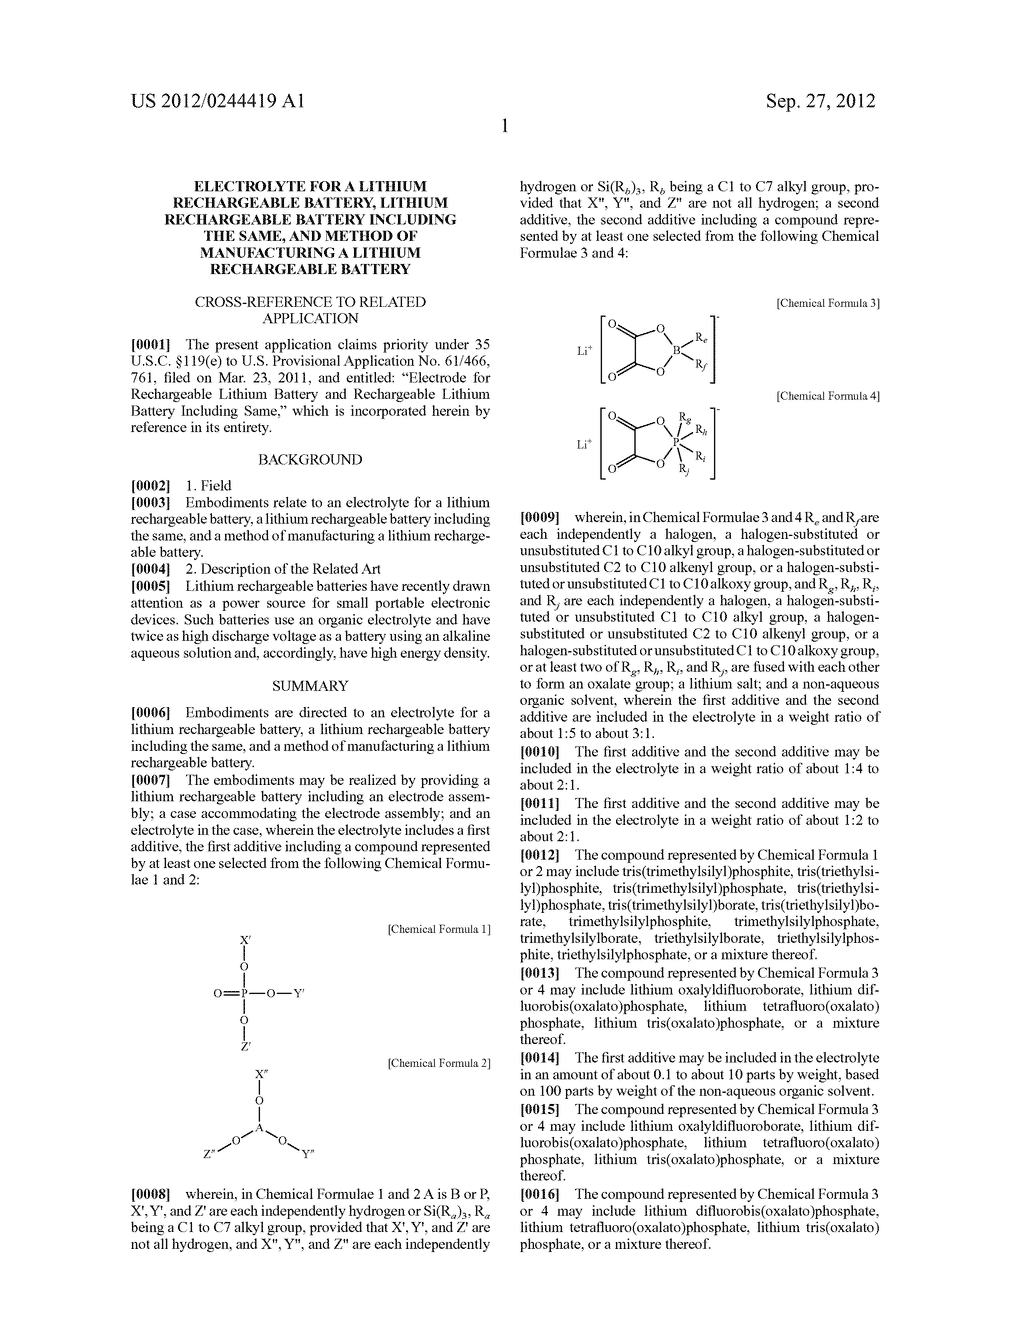 ELECTROLYTE FOR A LITHIUM RECHARGEABLE BATTERY, LITHIUM RECHARGEABLE     BATTERY INCLUDING THE SAME, AND METHOD OF MANUFACTURING A LITHIUM     RECHARGEABLE BATTERY - diagram, schematic, and image 03